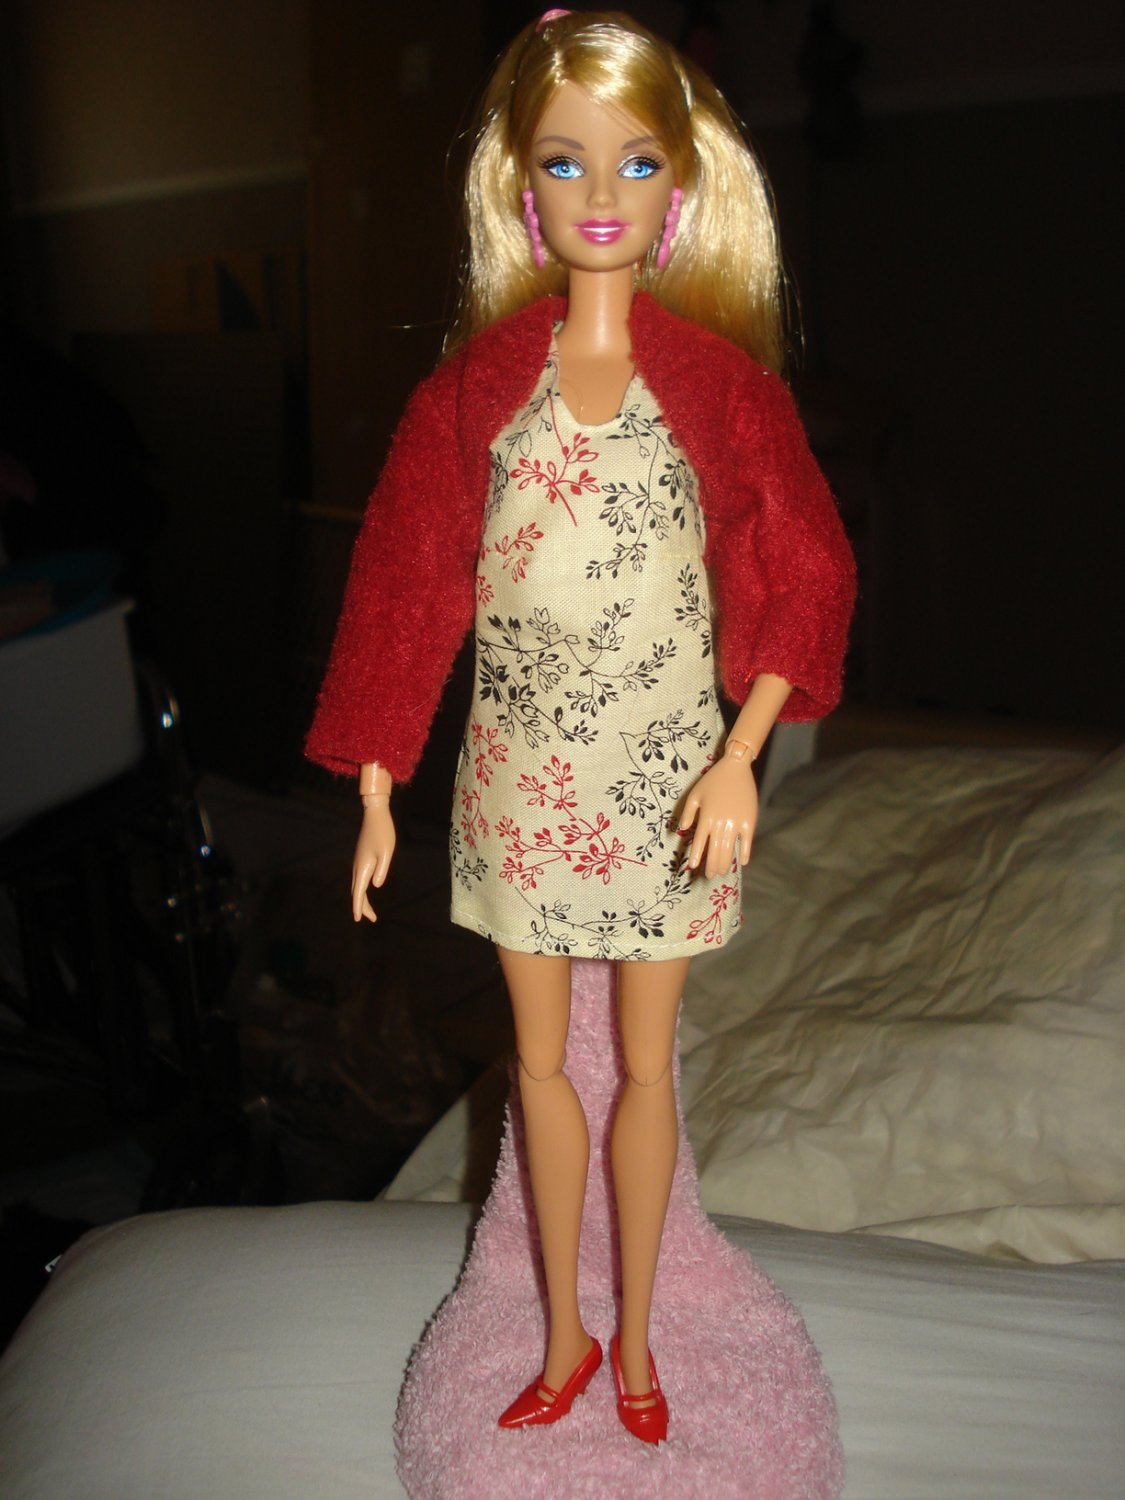 Short beige print dress and maroon jacket for Barbie Doll - ed50